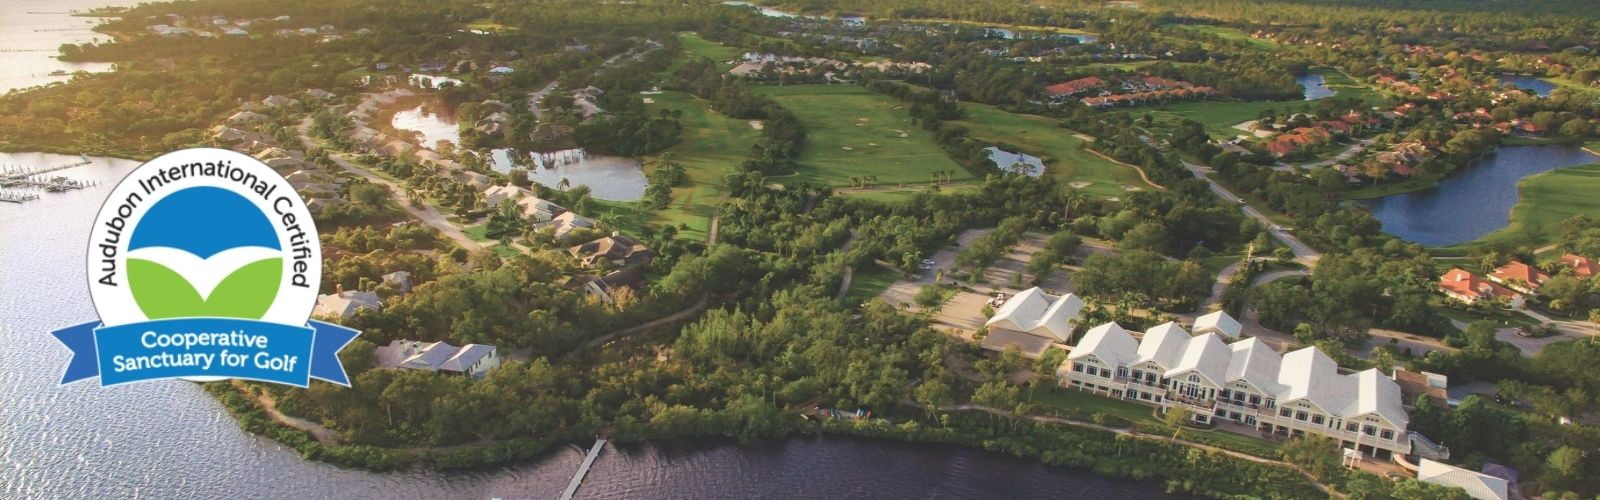 Harbour Ridge Yacht & Country Club Recognized for Environmental Excellence